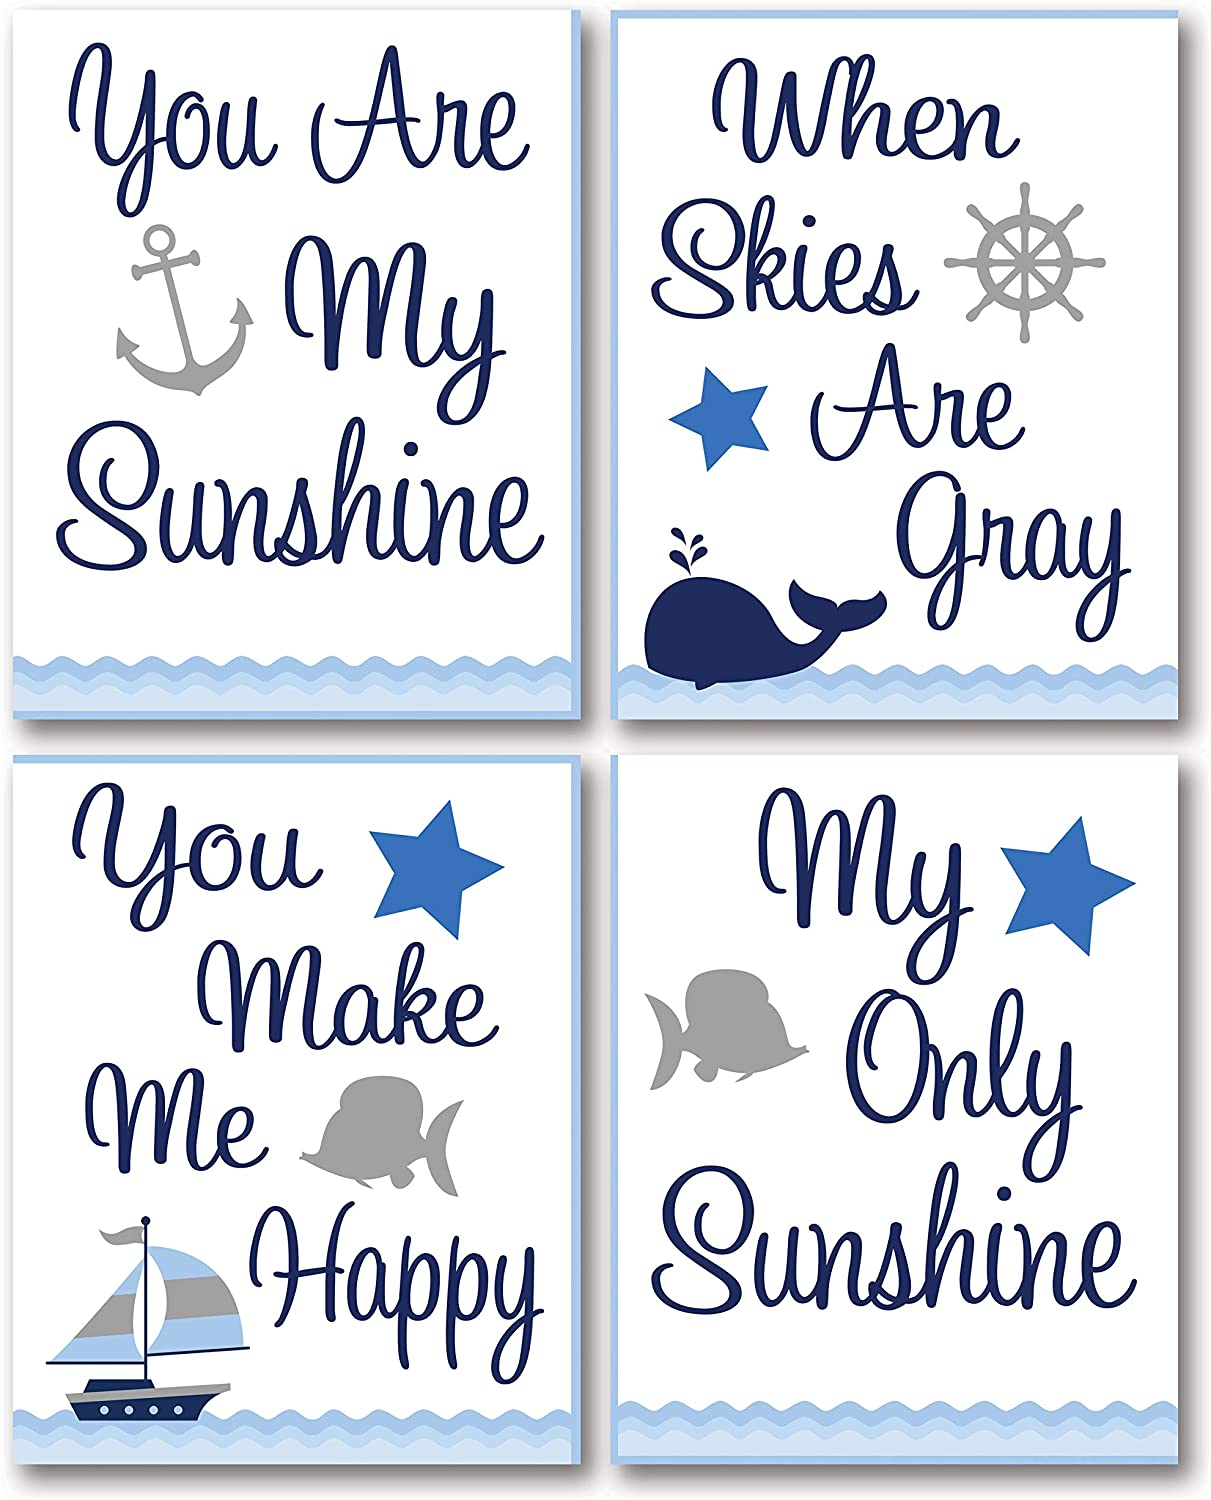 """Adorable Blue and Grey Nautical """"You Are My Sunshine...You Make Me Happy When Skies Are Grey"""" Paper Panel; Child's Room or Nursery Decor; Four 8x10in Unframed Paper Posters"""